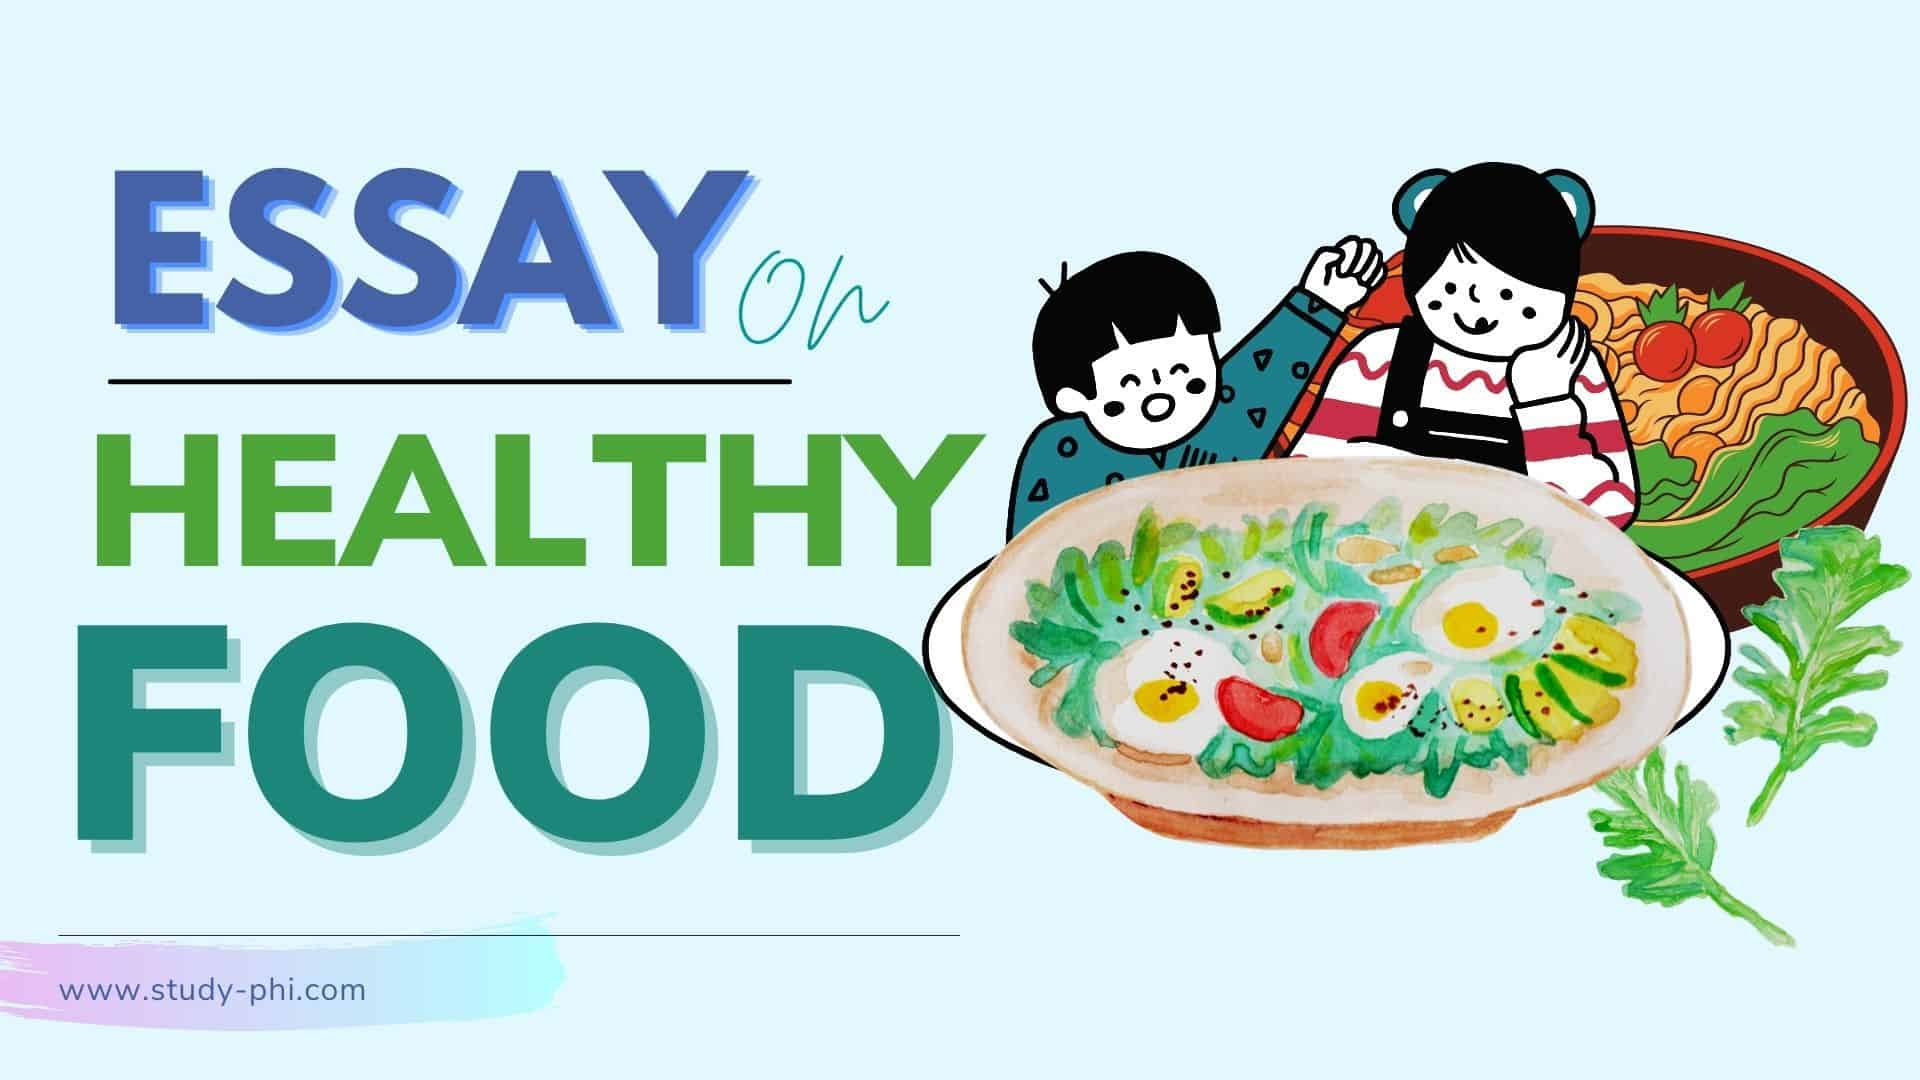 About Healthy Food Essay